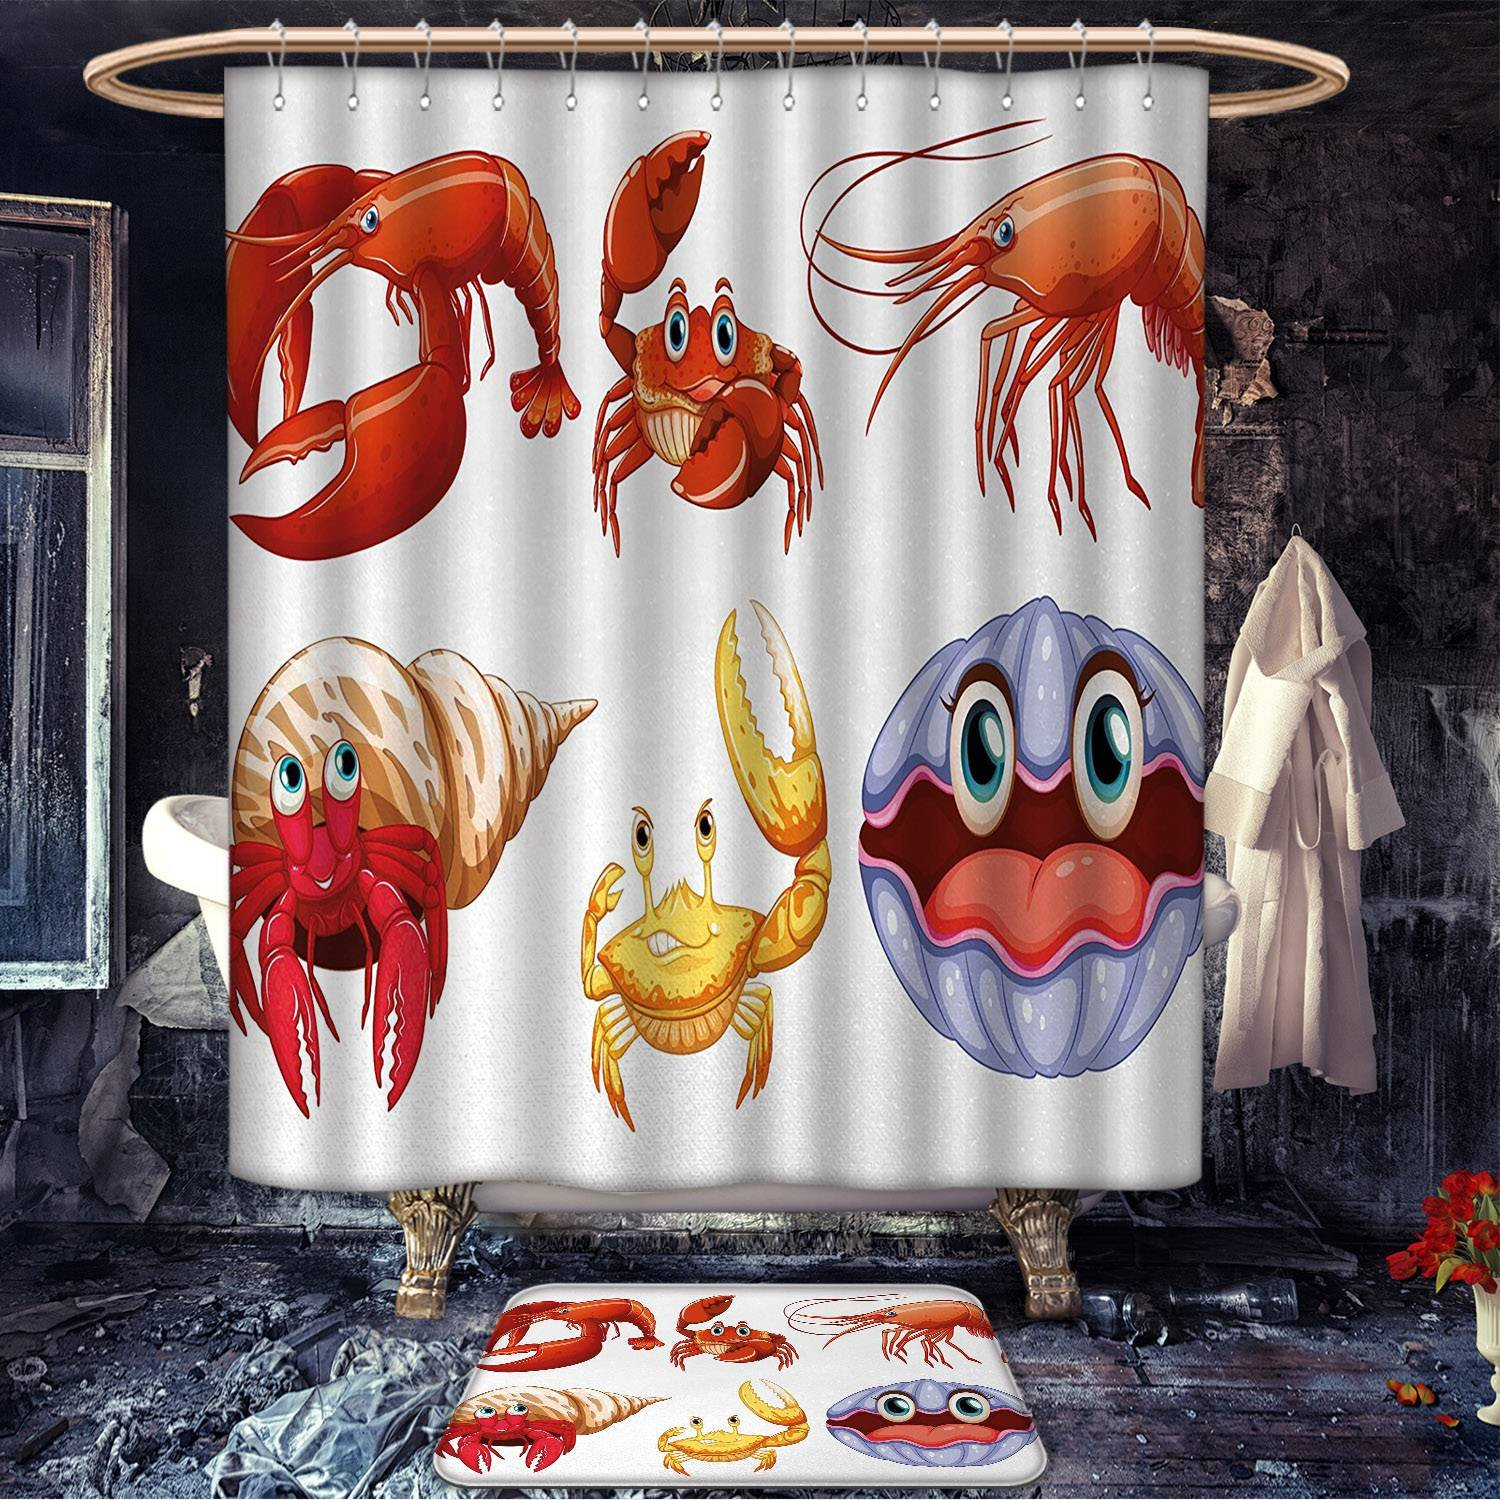 Longbuyer Crabs custom made Bath mat set Illustration of Sea Animals like Crab Hermit Crab Lobster Shells Shrimp Print Satin Fabric sets bathroom Orange Yellow